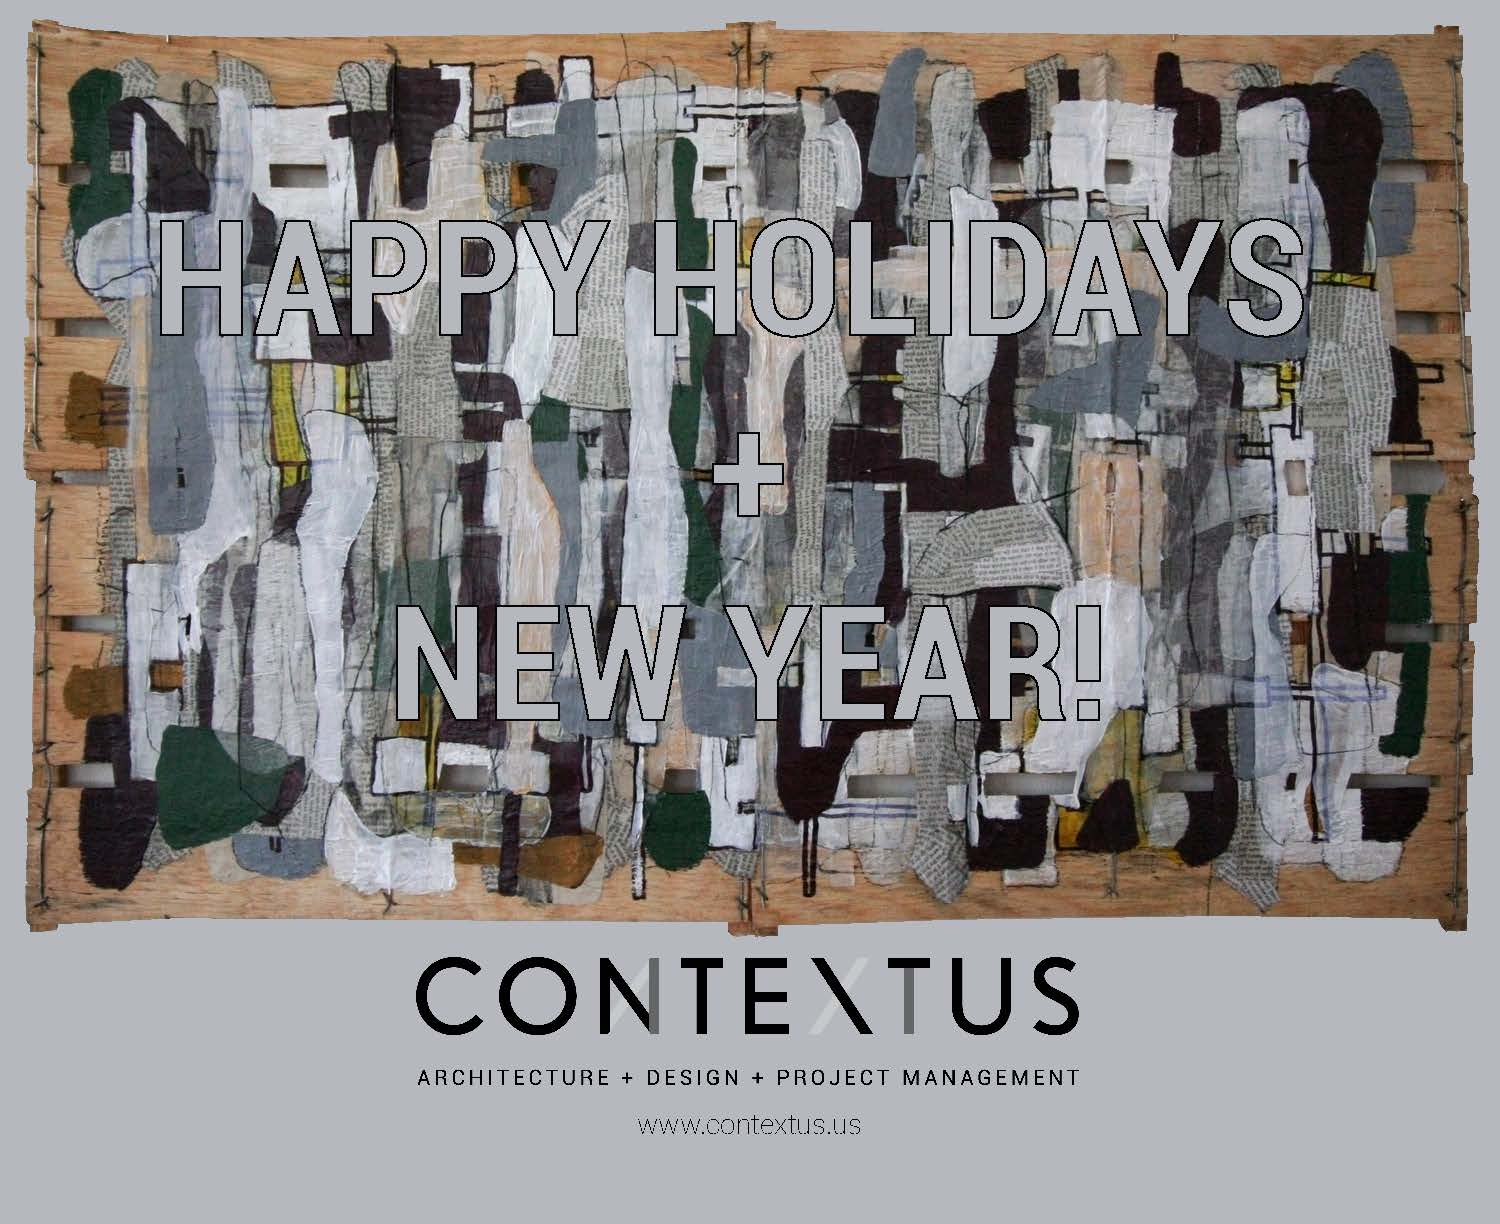 Contextus Holiday Card 2018.jpg